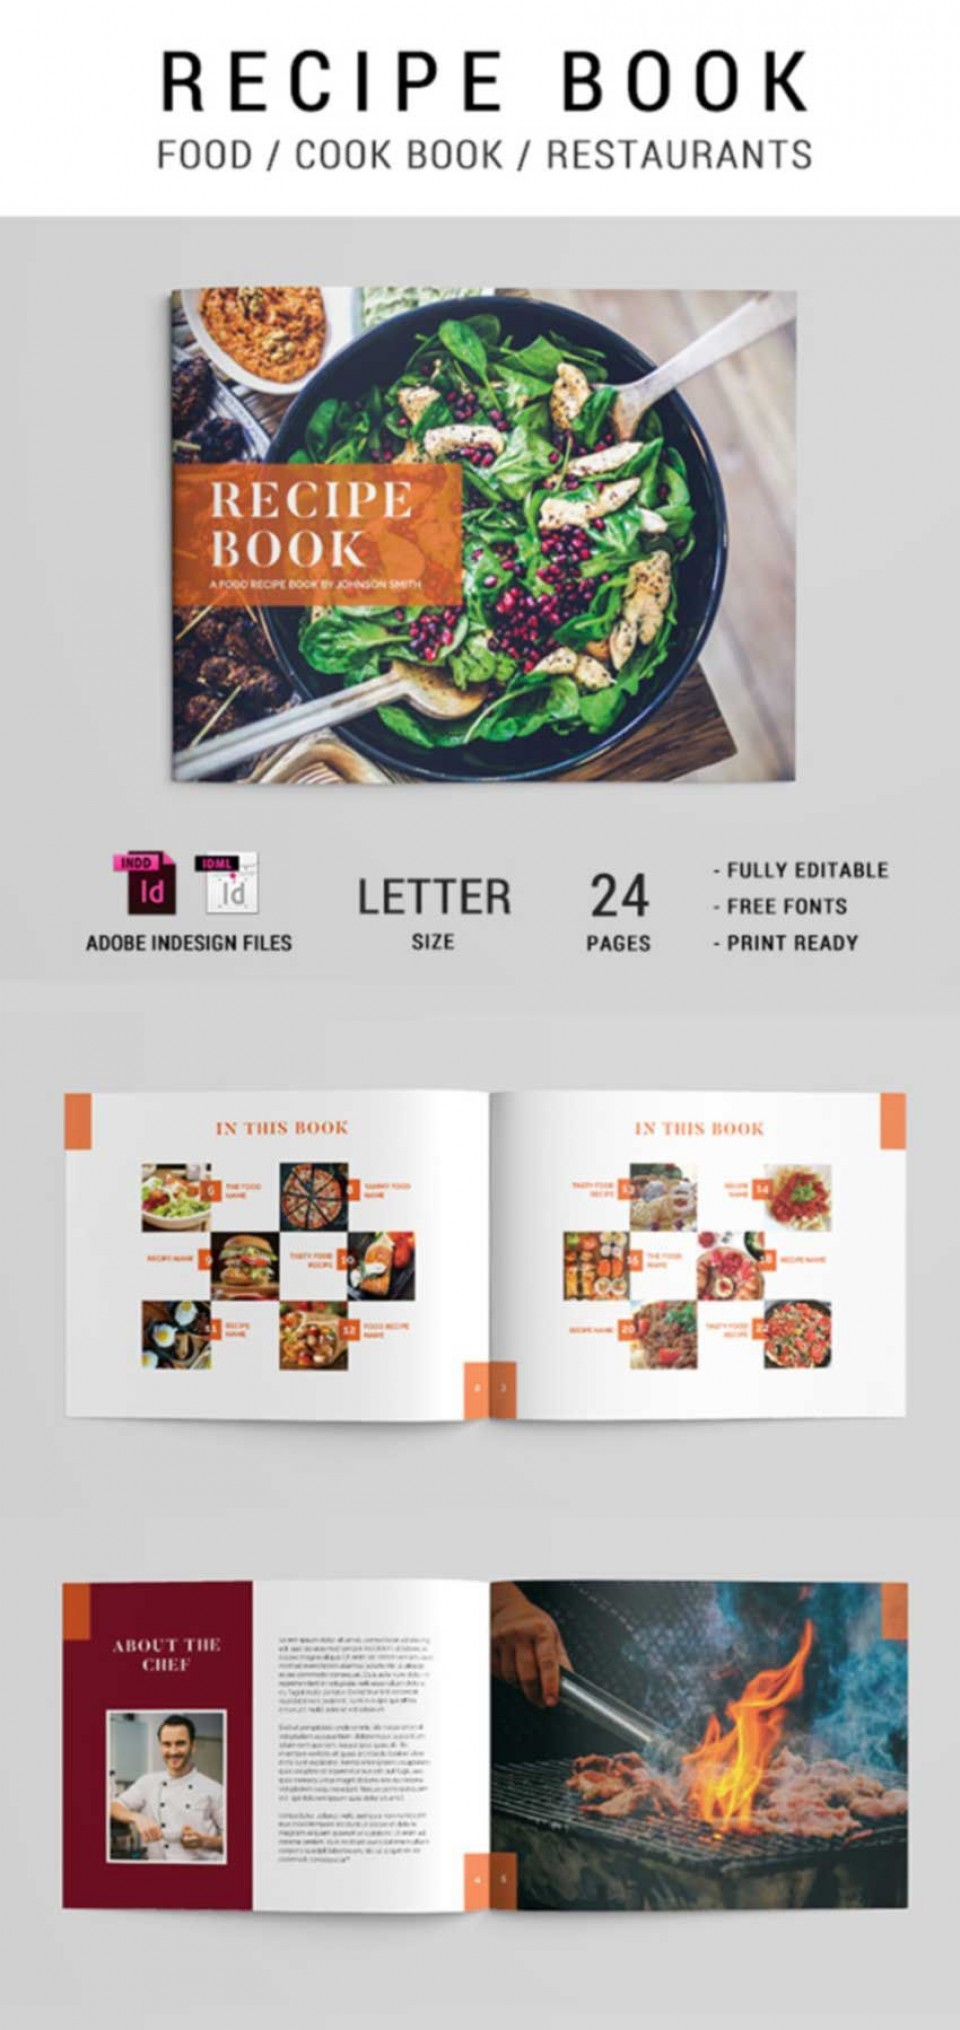 010 Stunning Create Your Own Cookbook Template Photo  Make Free My960